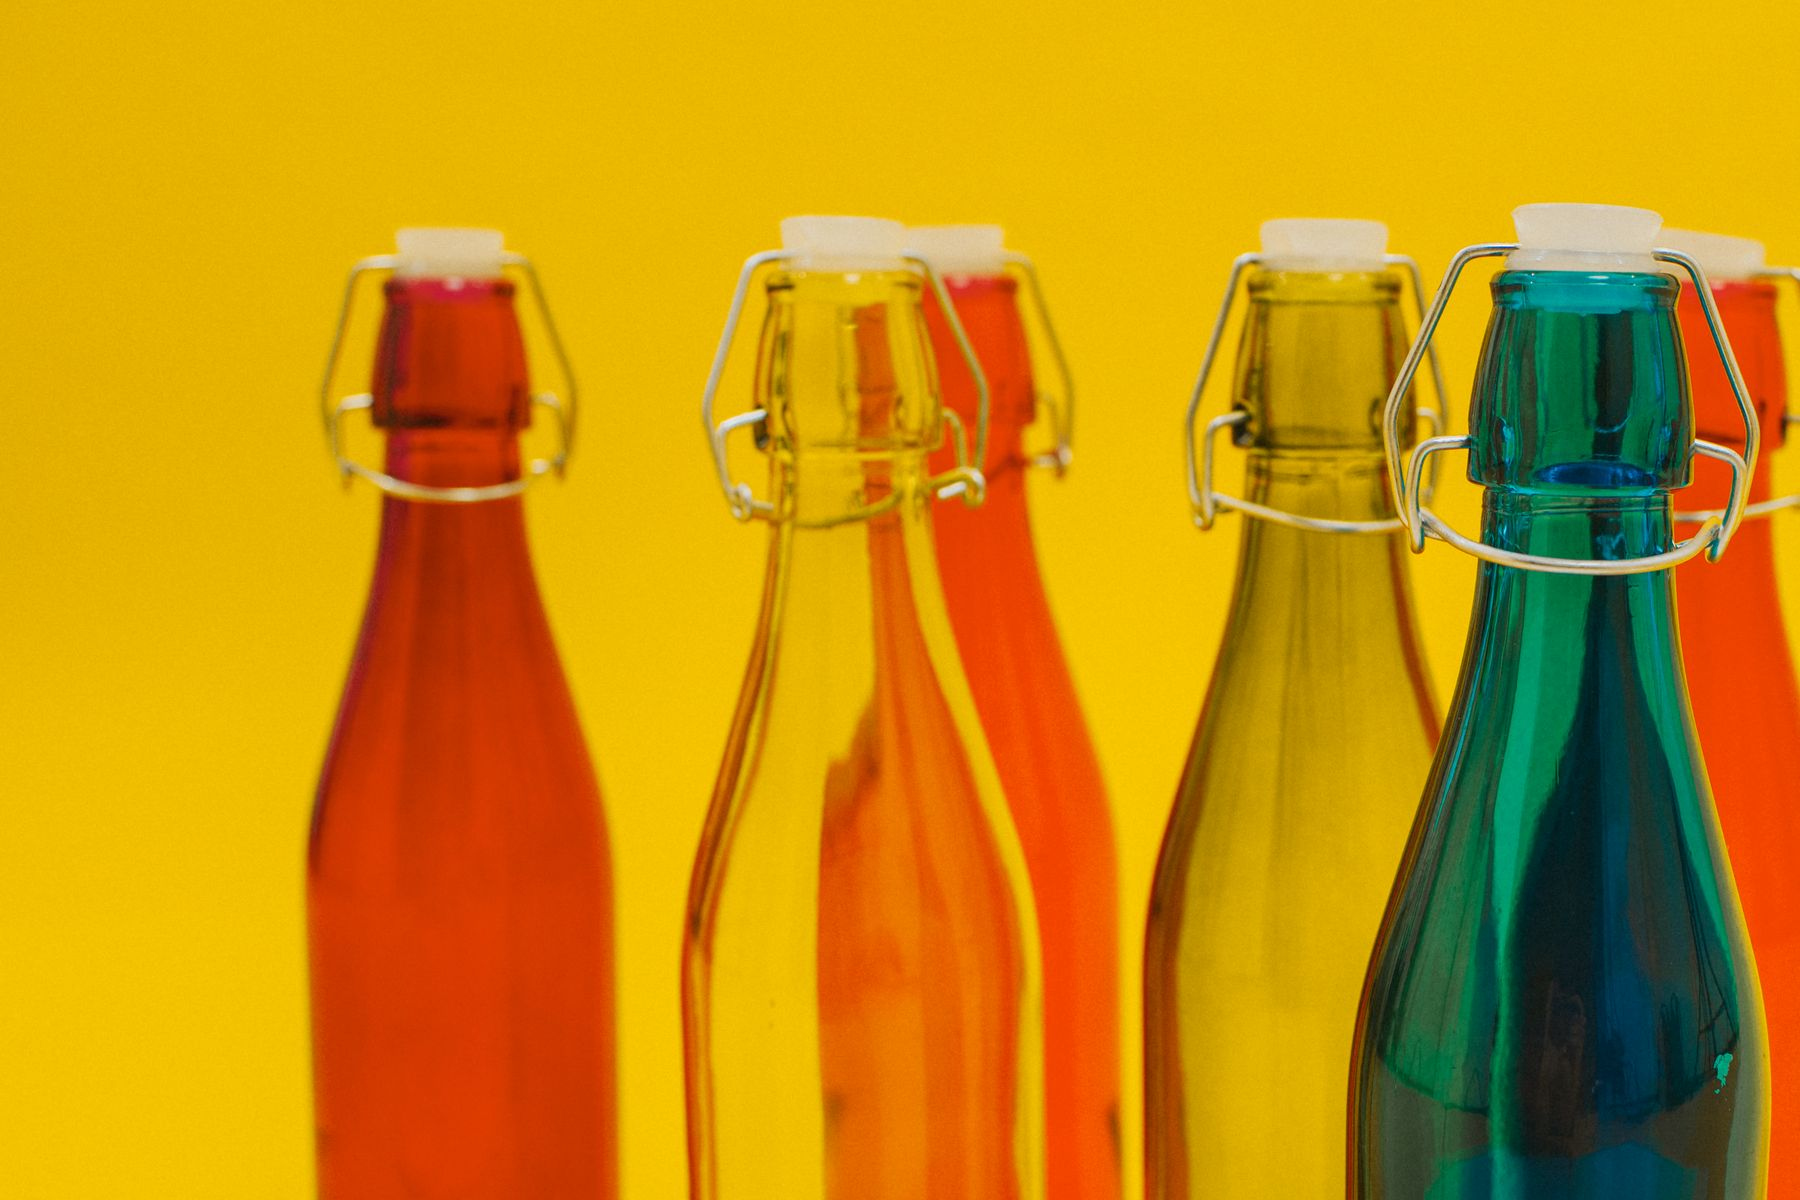 Coloured glass bottles against yellow backdrop